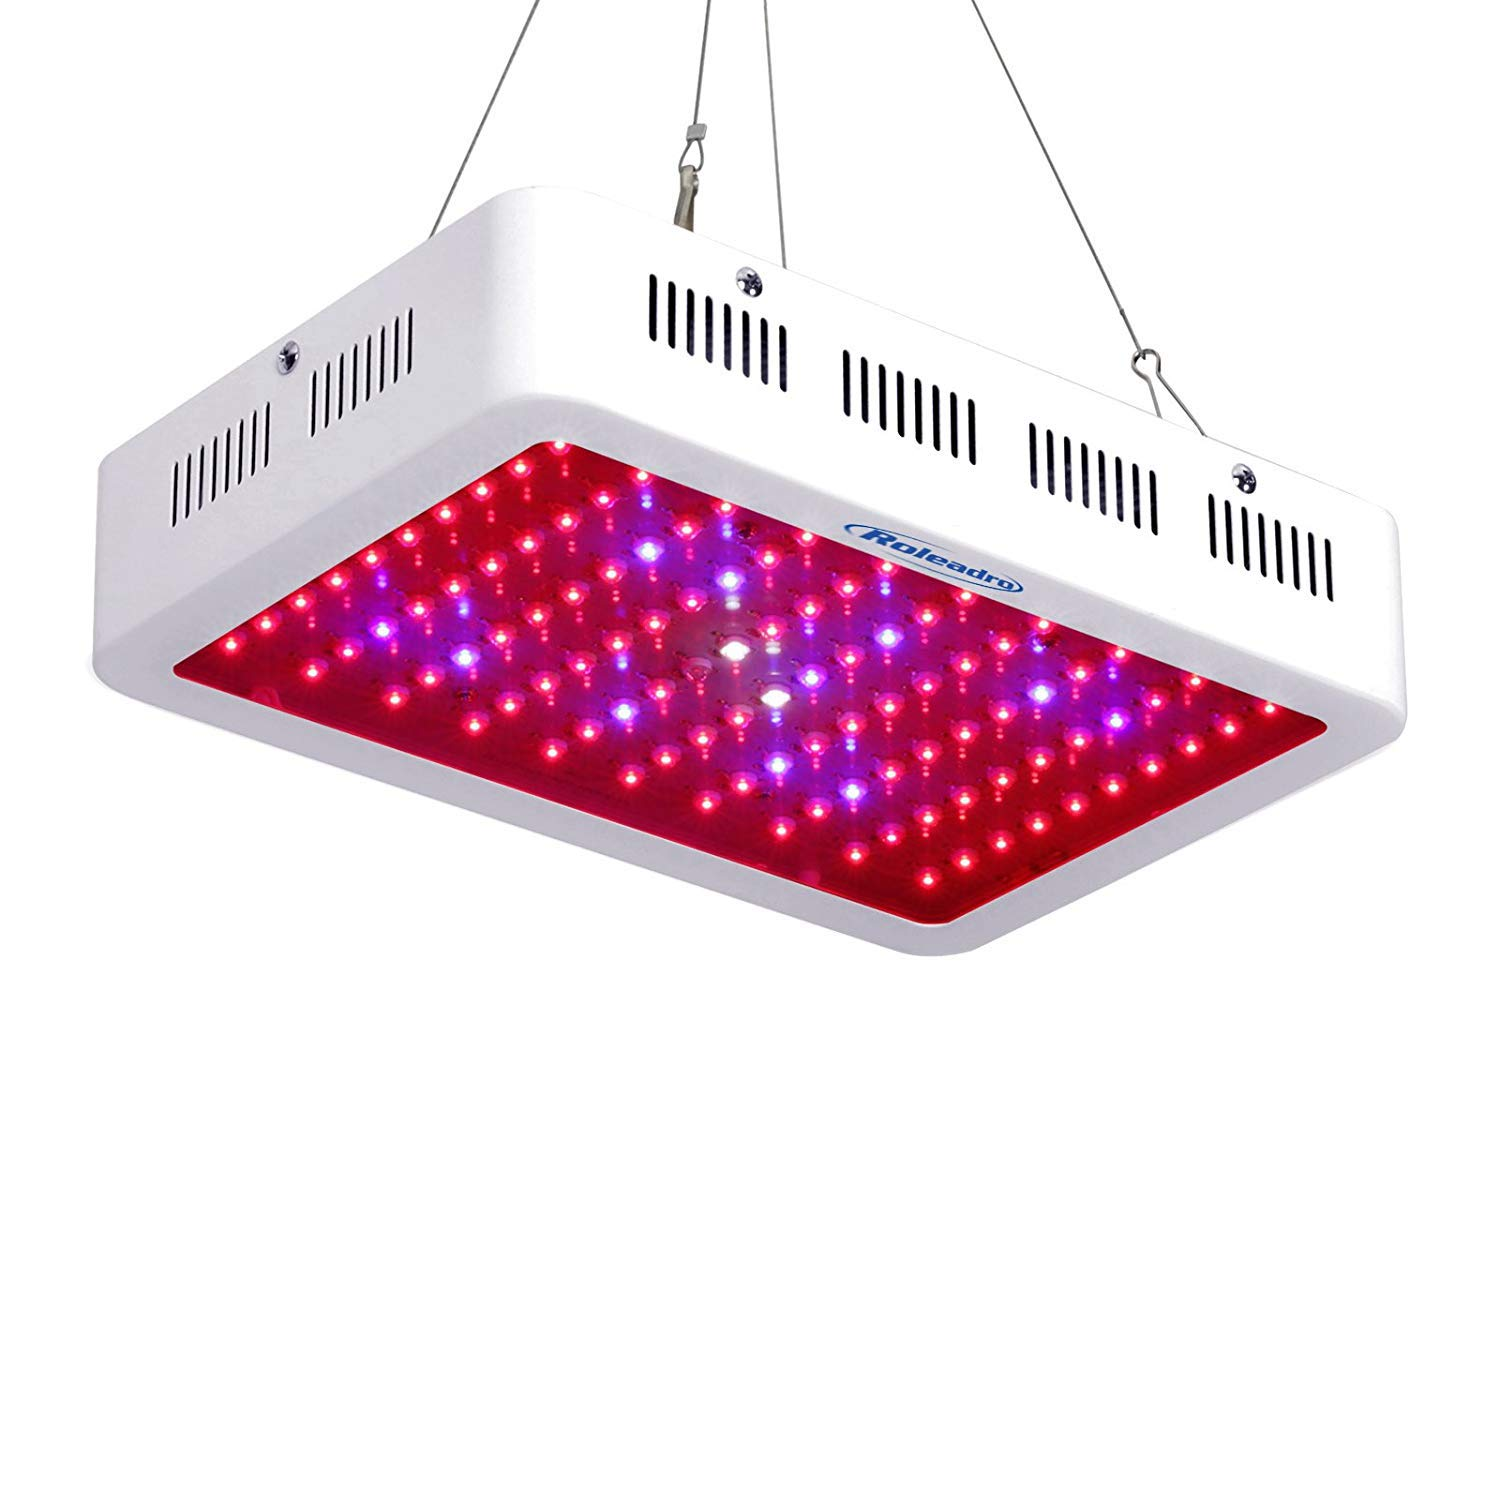 Roleadro Led Grow Light 300W COB Full Spectrum Light Grow Lamp Hydroponic Light for Indoor Hydroponic Plant Growing in Grow Box/Grow Tent